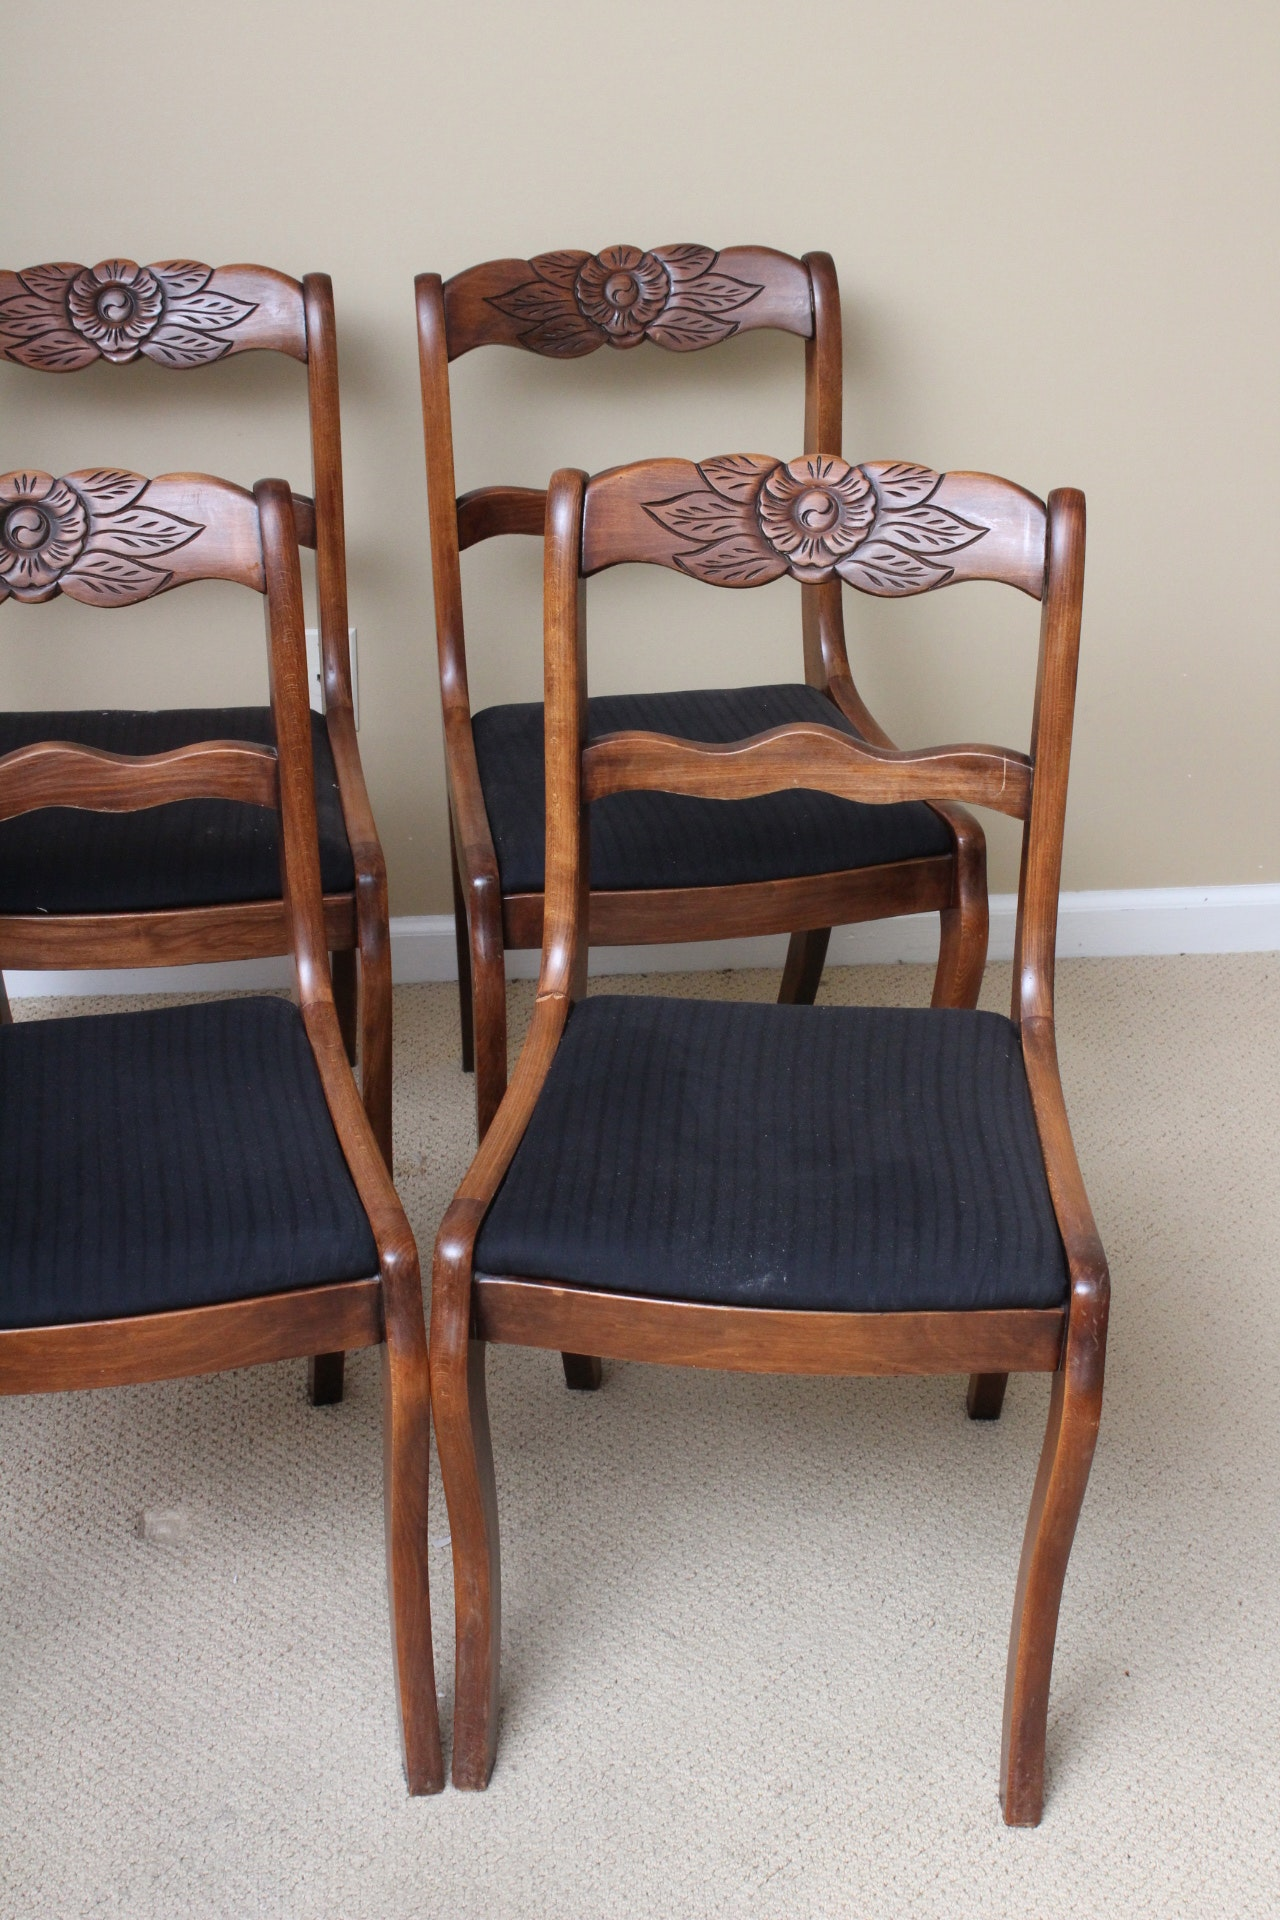 Dining Room Chair Seats Recovered